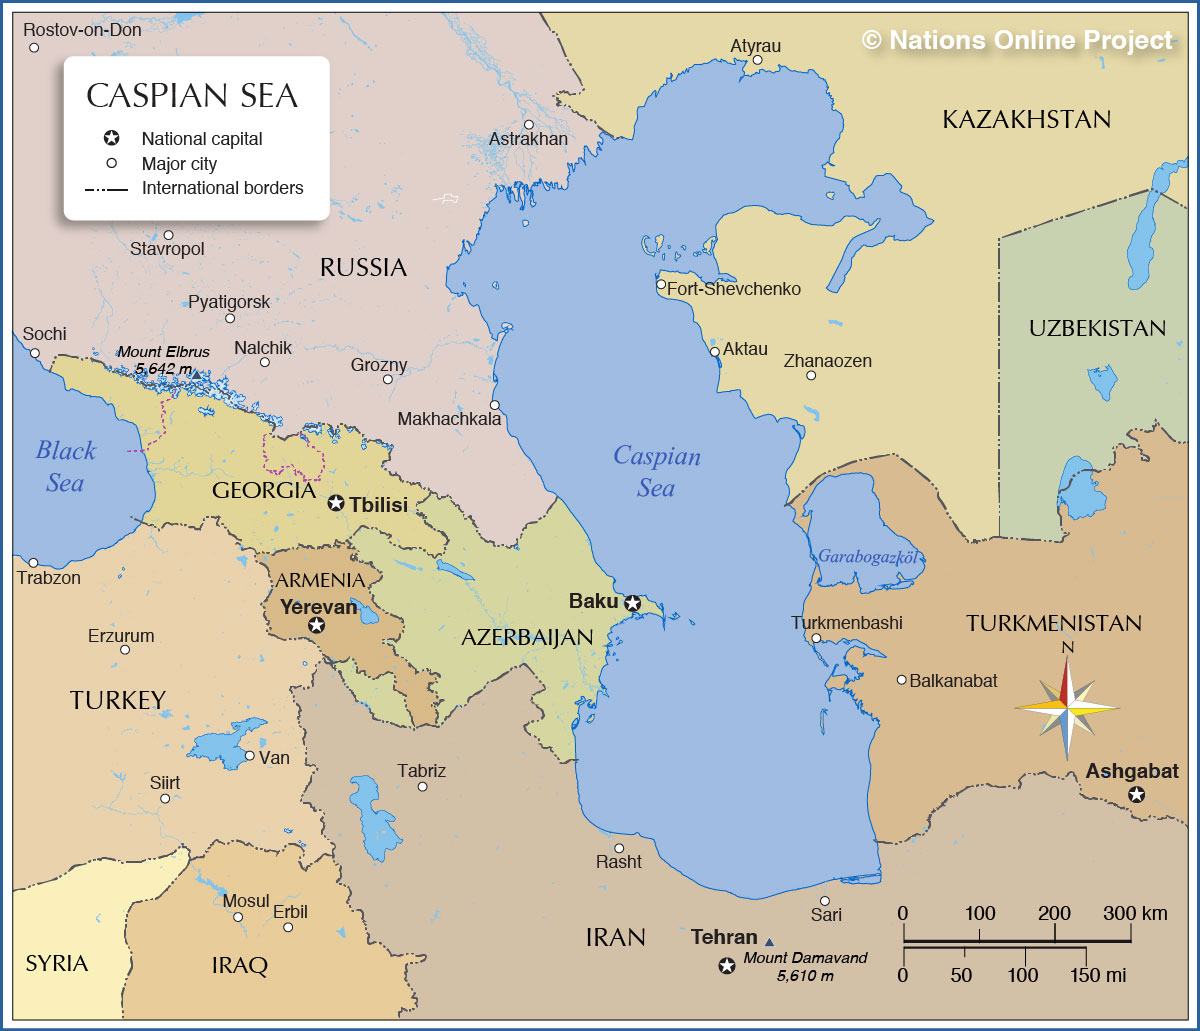 Caspian Sea On Map Map of the Caspian Sea   Nations Online Project Caspian Sea On Map